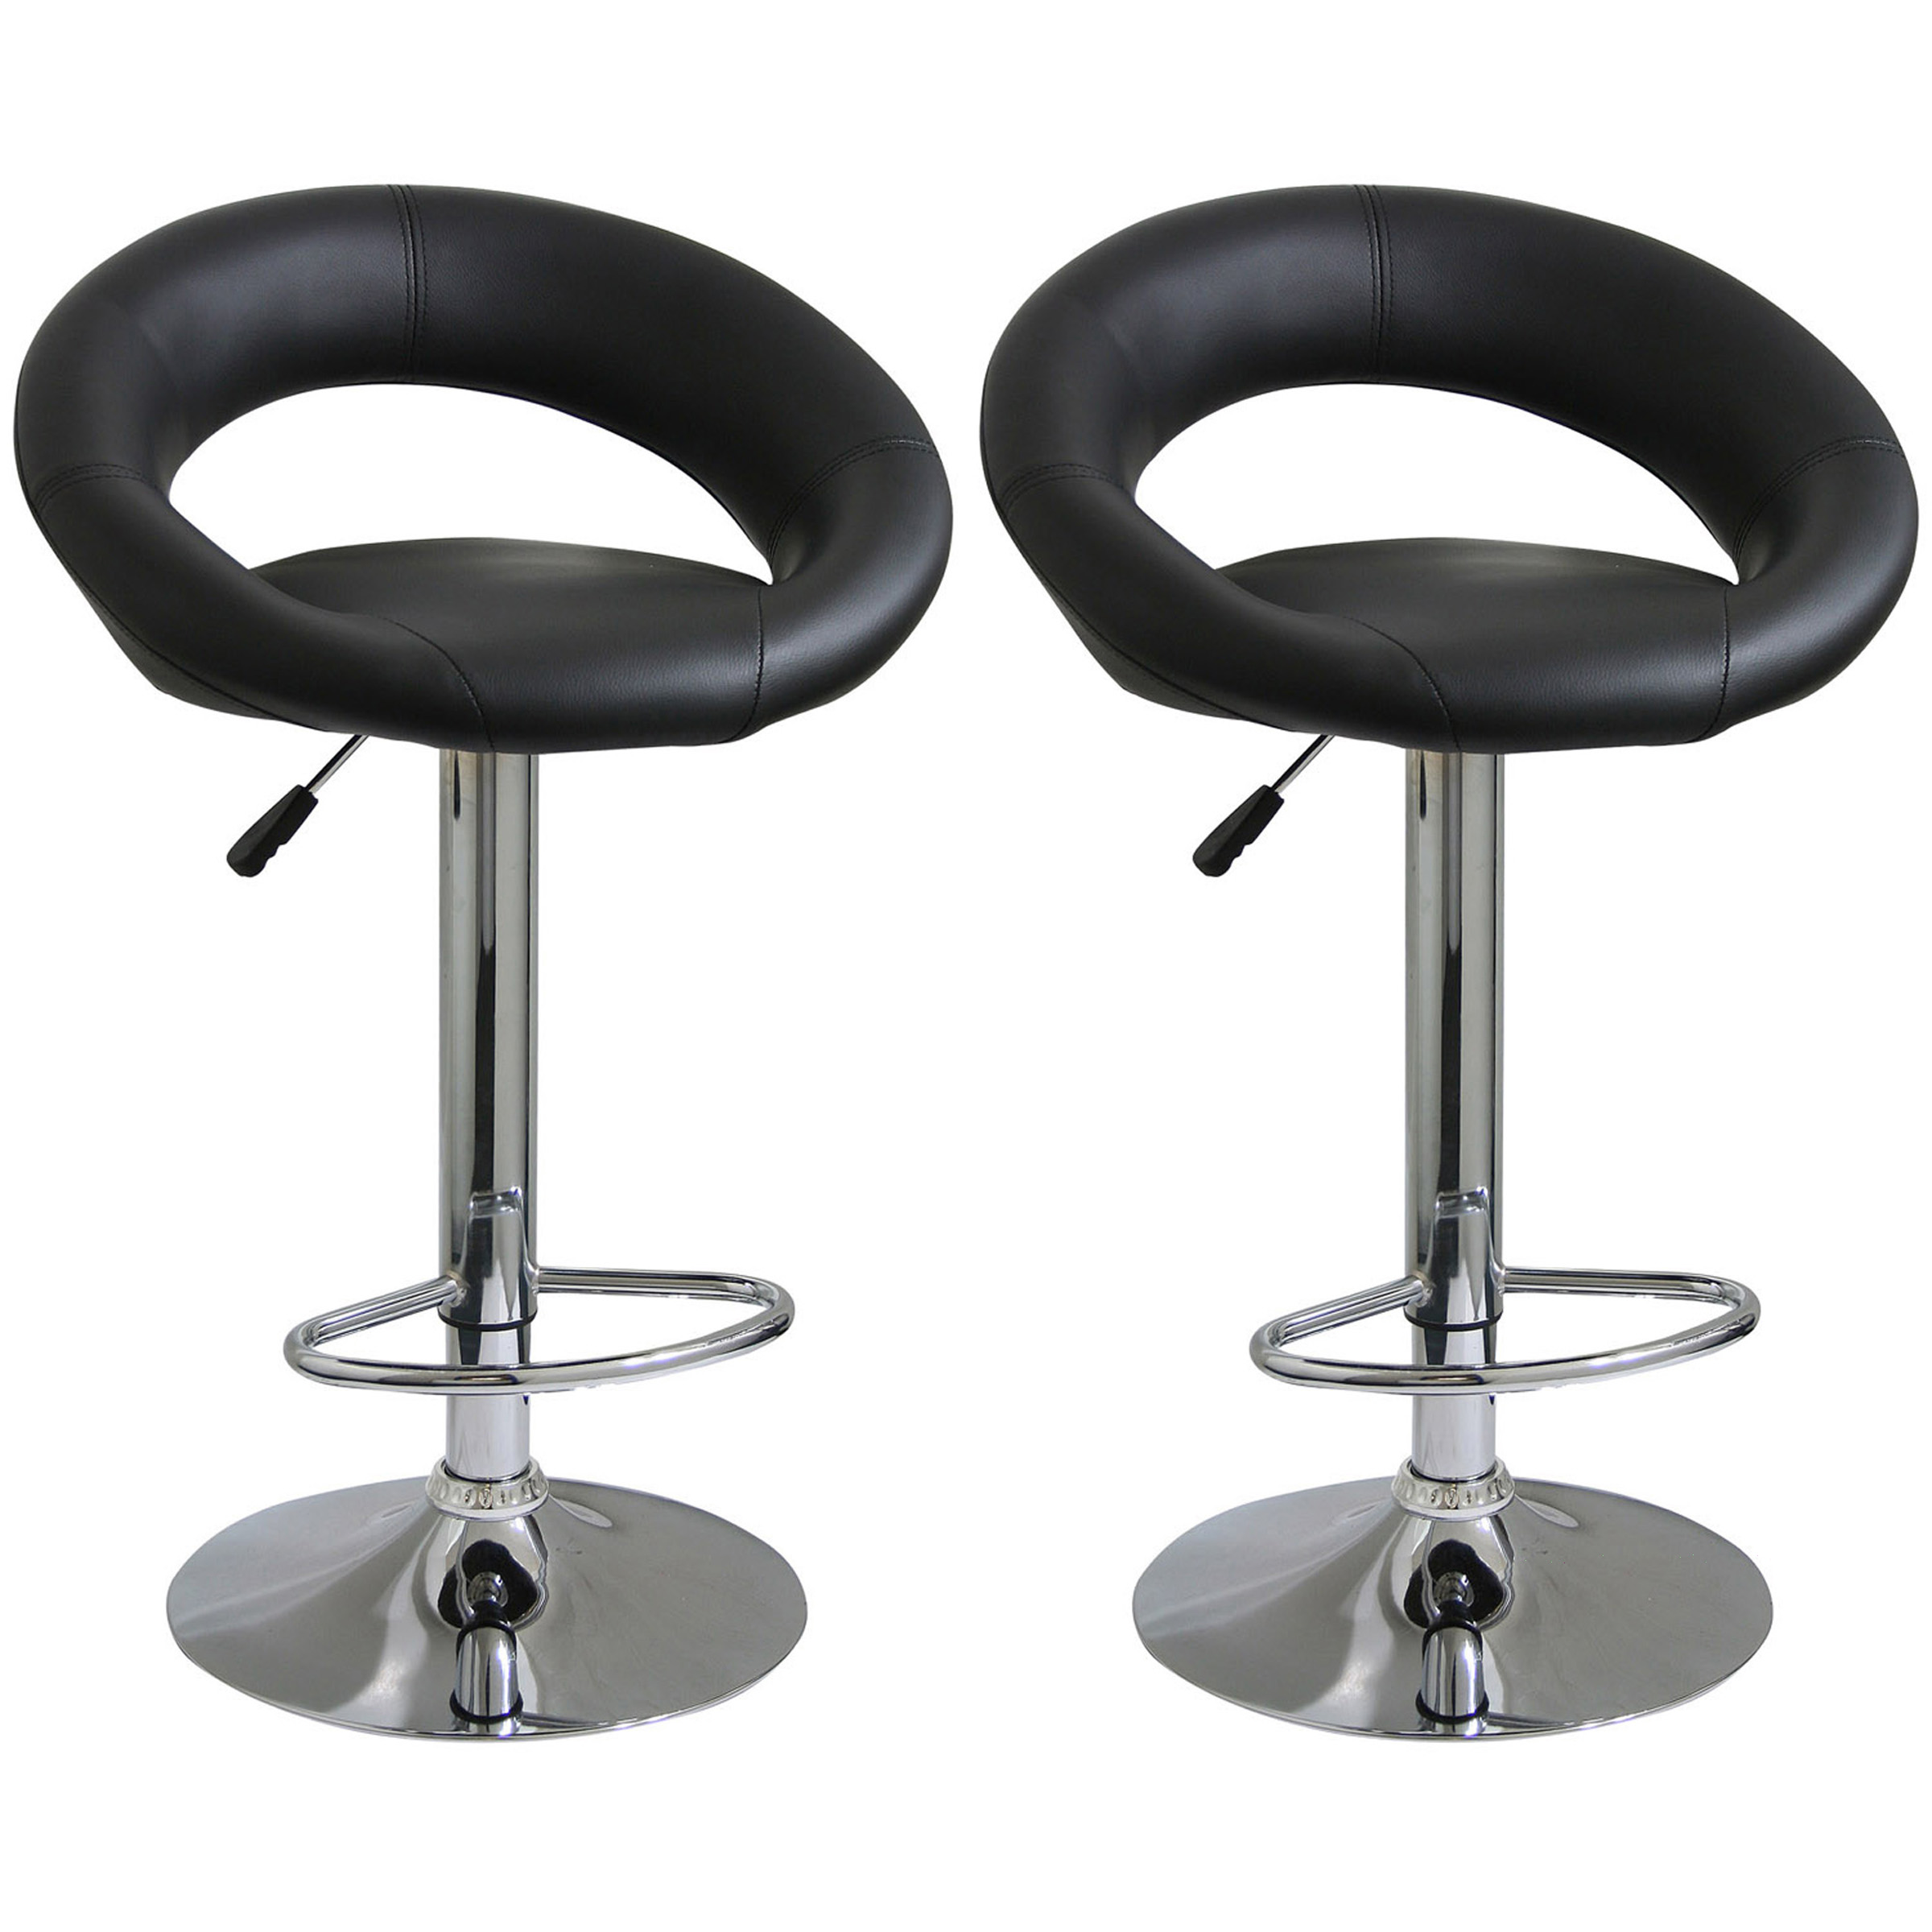 amerihome classic relaxed bar stool   pc black  walmartcom -